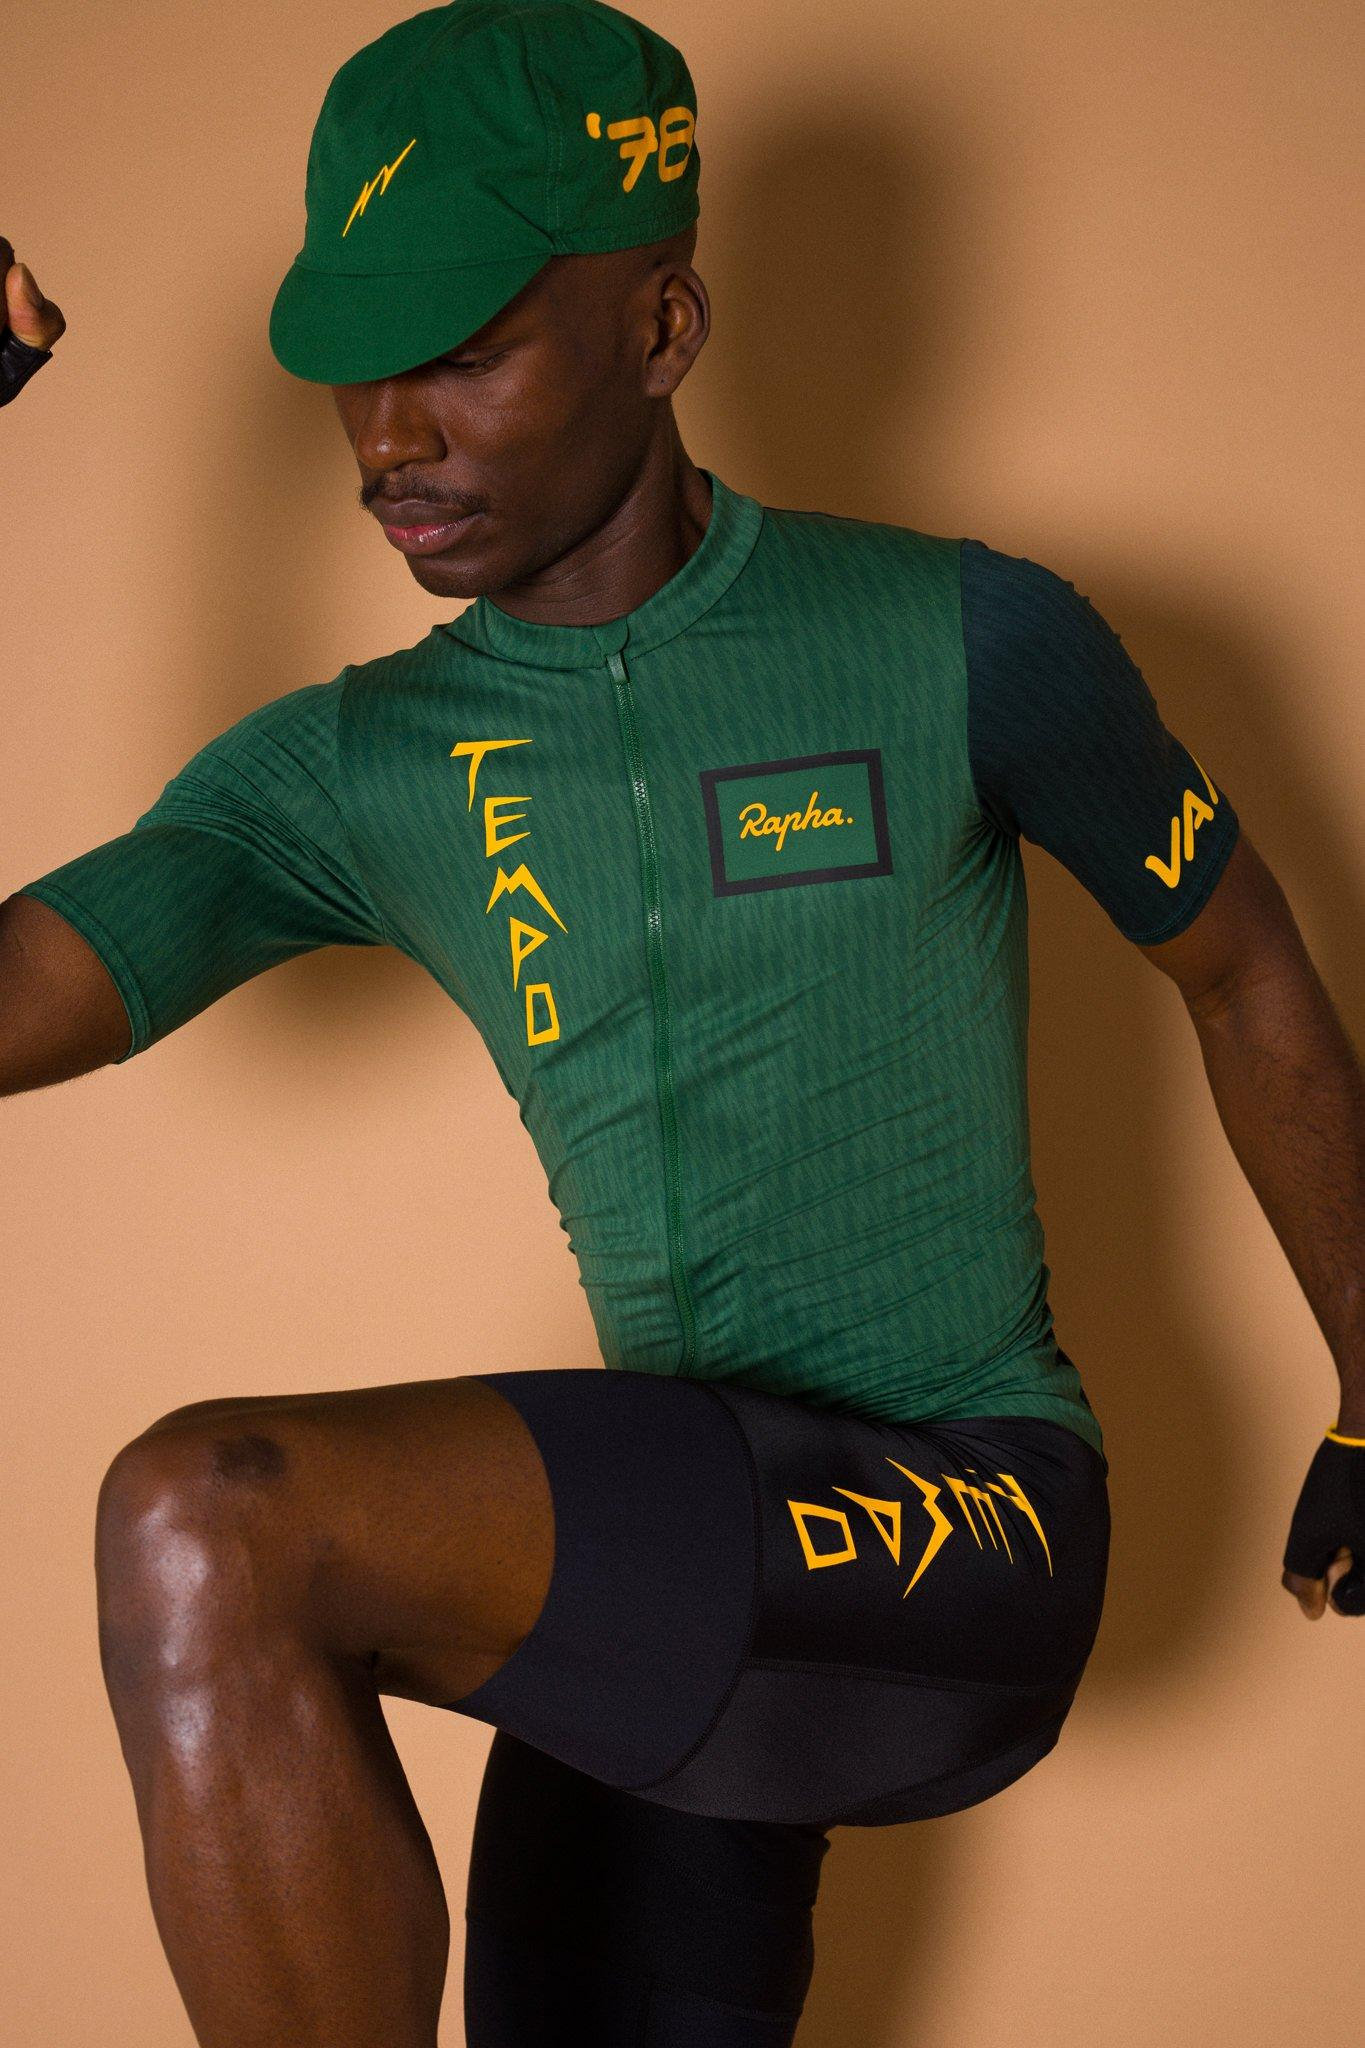 Rapha Nelson Vails Collection